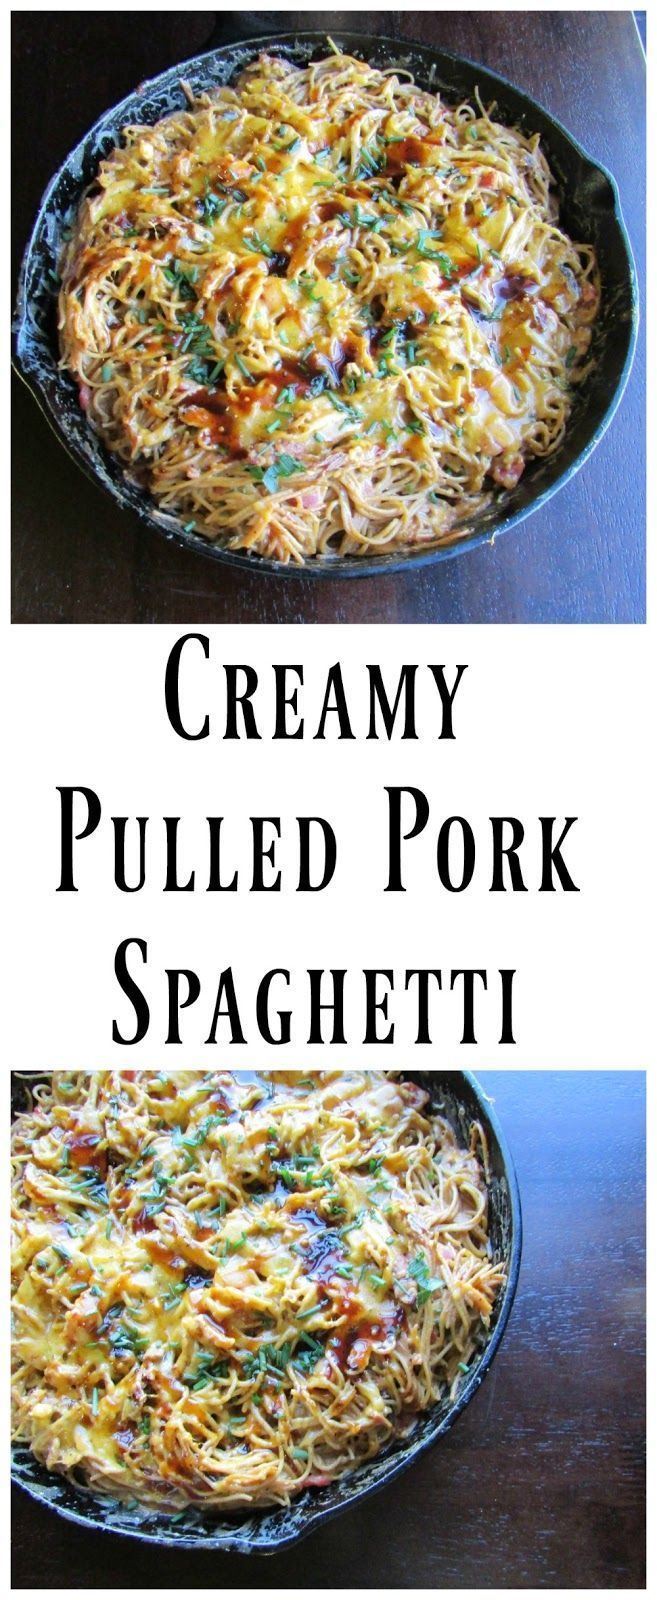 Have Some Leftover Pulled Pork But Don T Want To Make More Sandwiches Break Out The Spaghe Pulled Pork Leftover Recipes Pulled Pork Recipes Leftovers Recipes